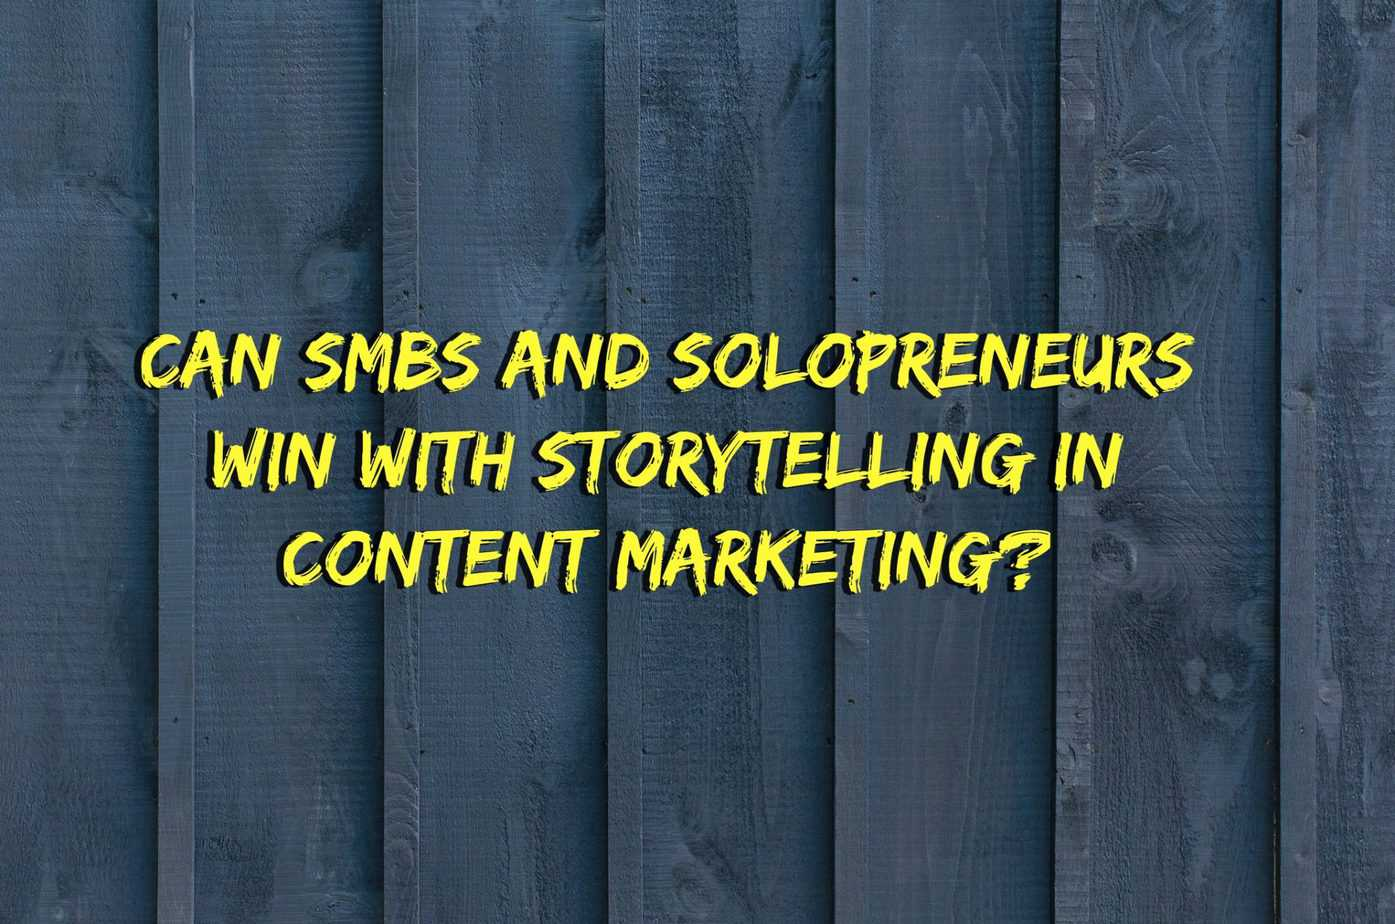 Do you have to be one of the big guys to use storytelling in content marketing?